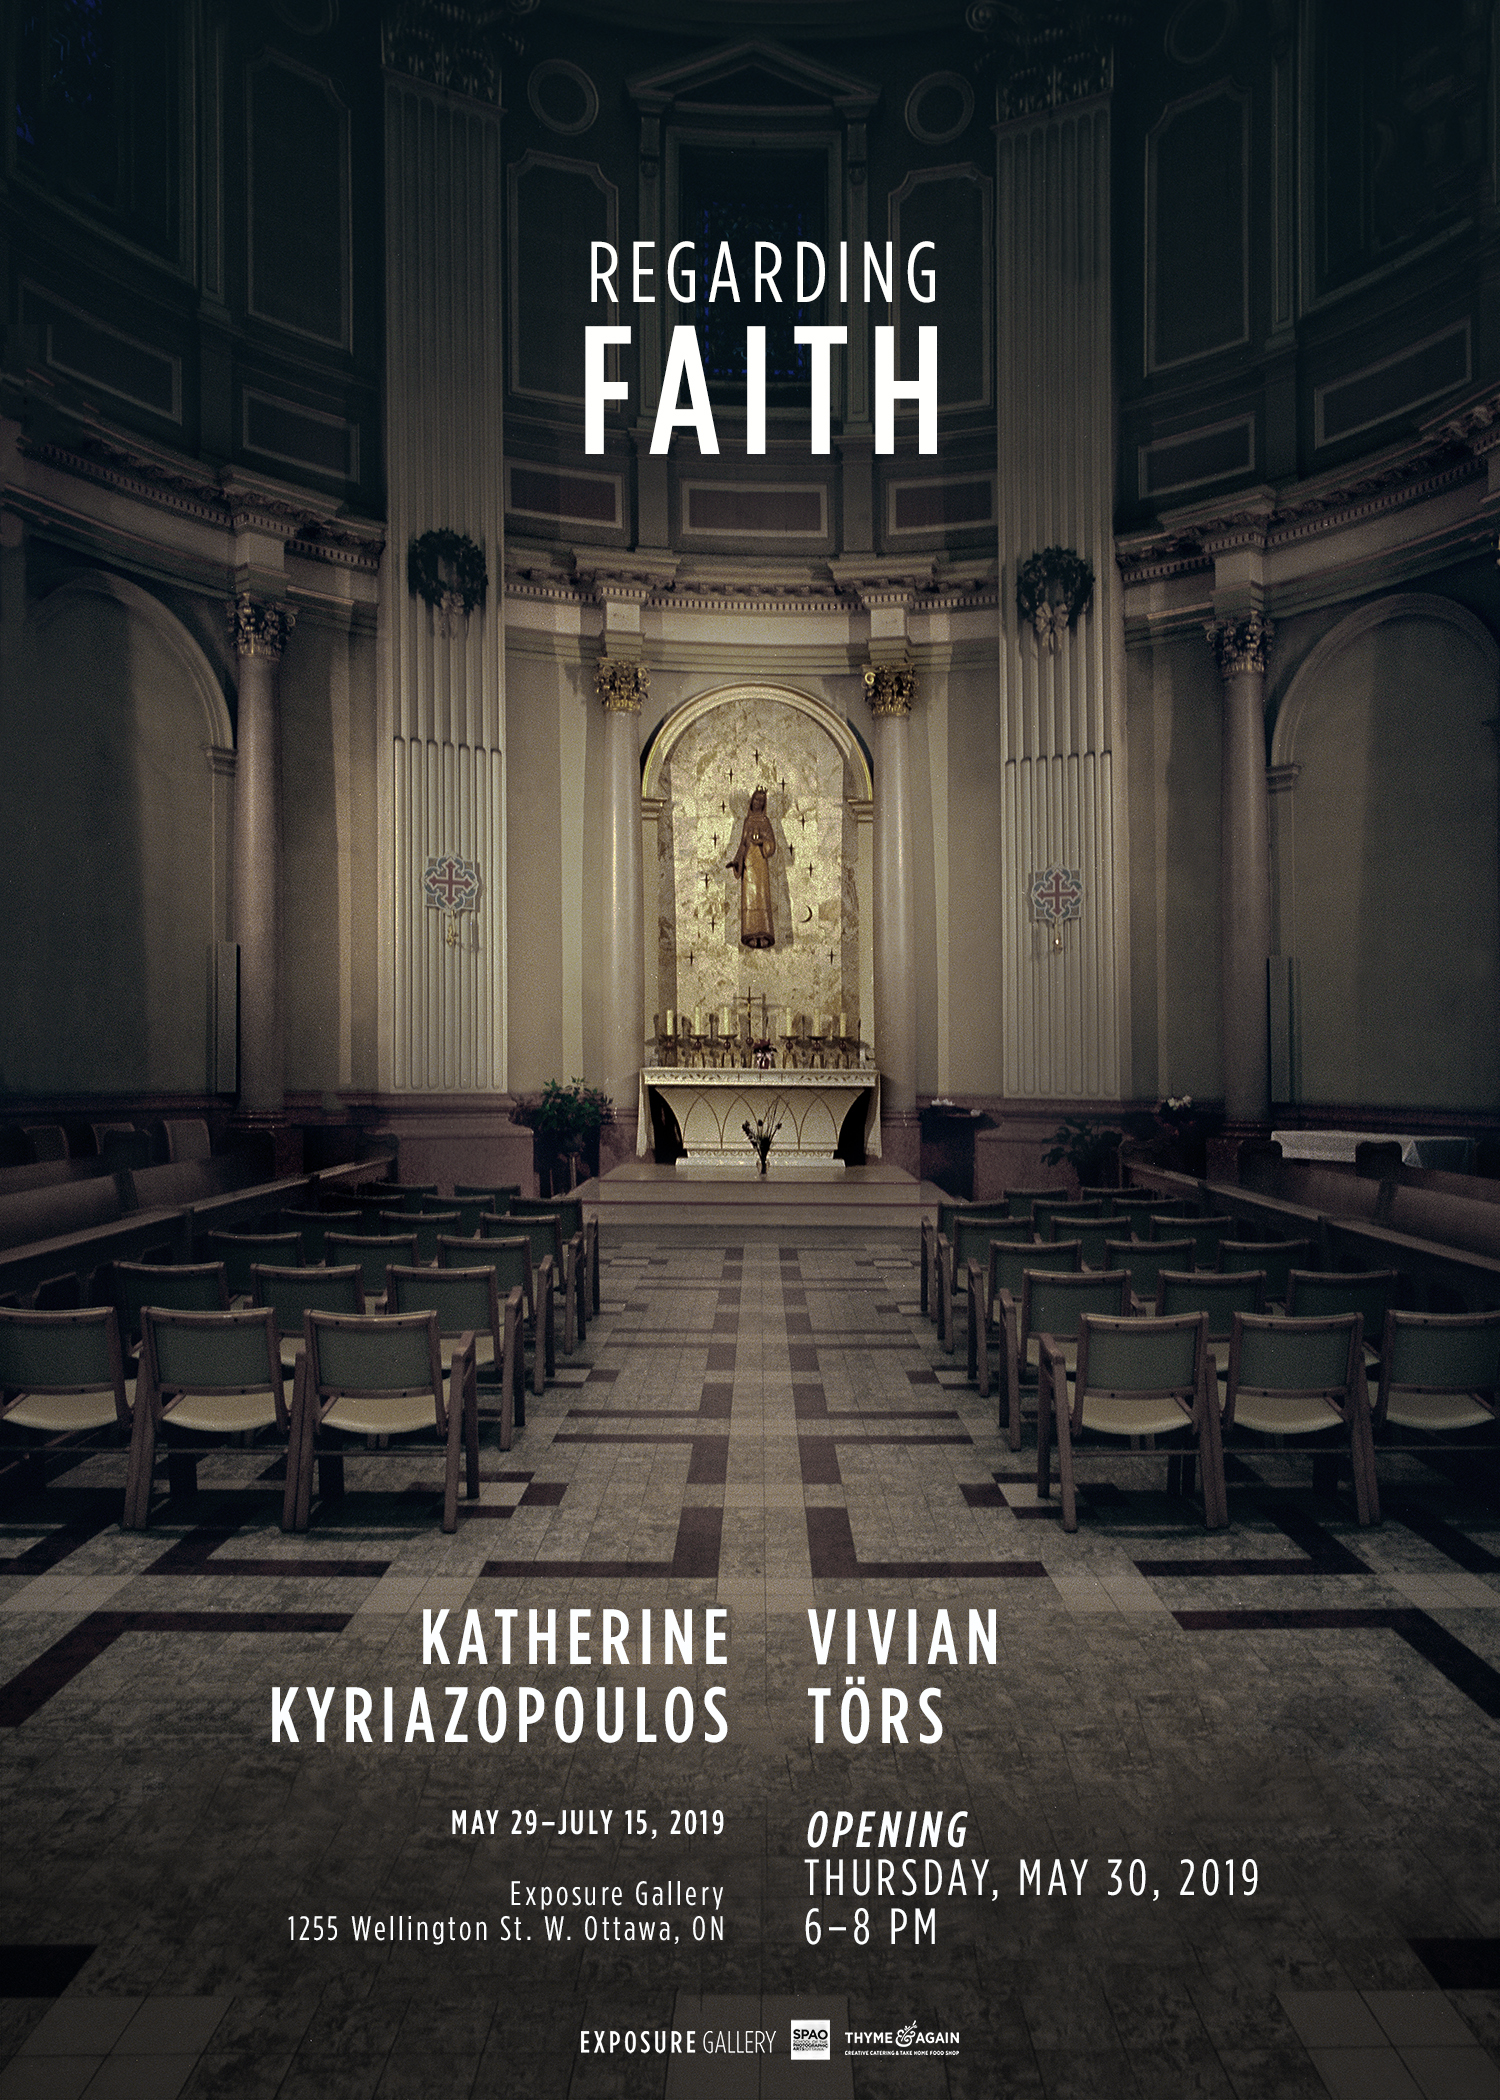 REGARDING FAITH POSTER.jpg